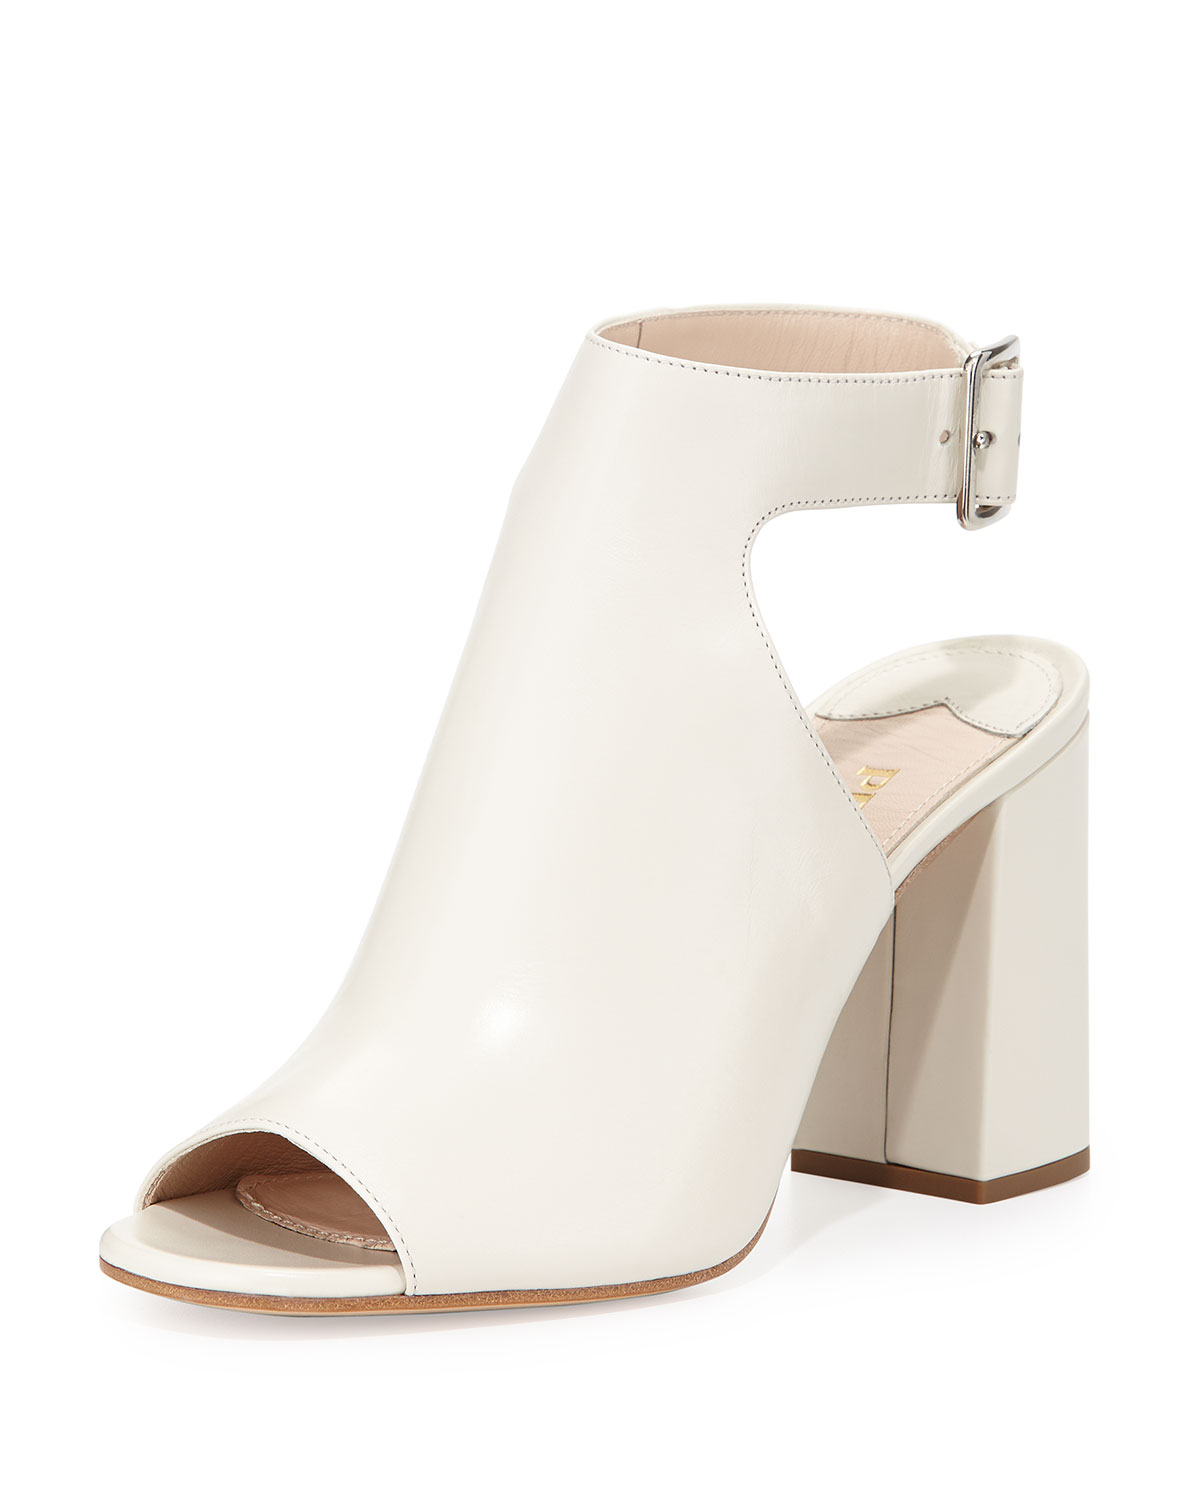 Leather Ankle-Wrap Sandal, Talco